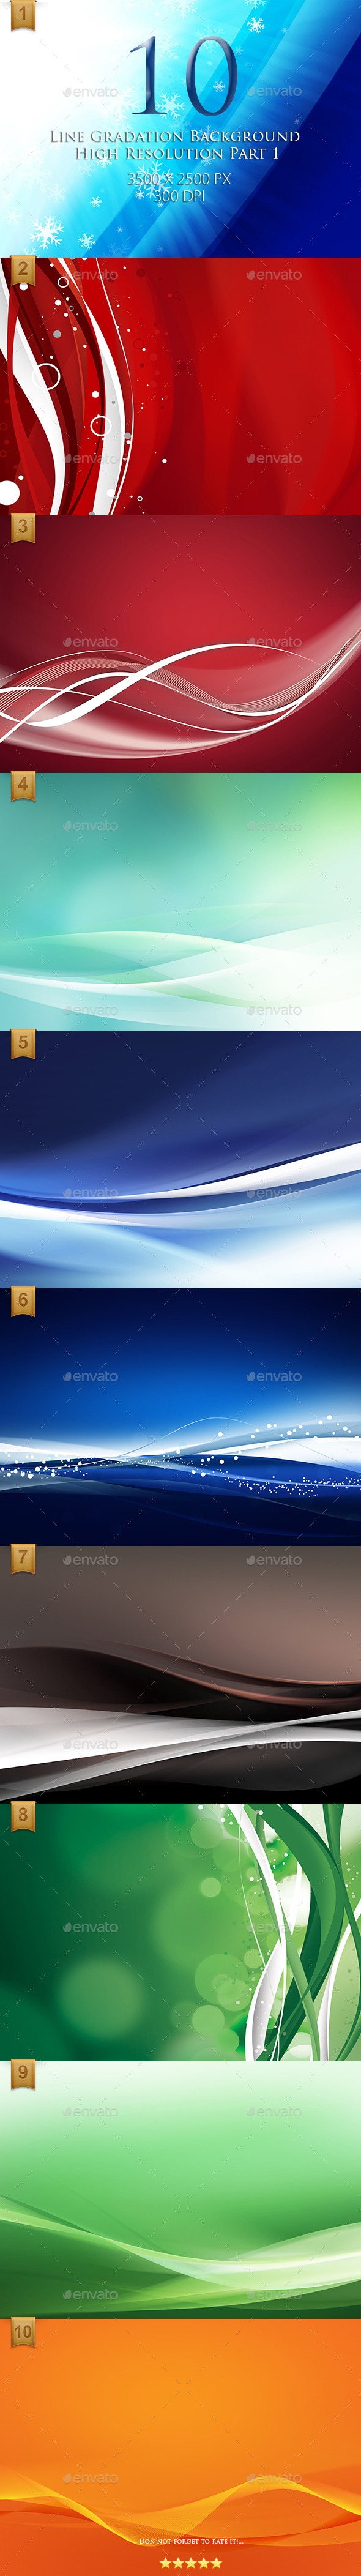 10 Line Gradation Background High Resolution - Abstract Backgrounds